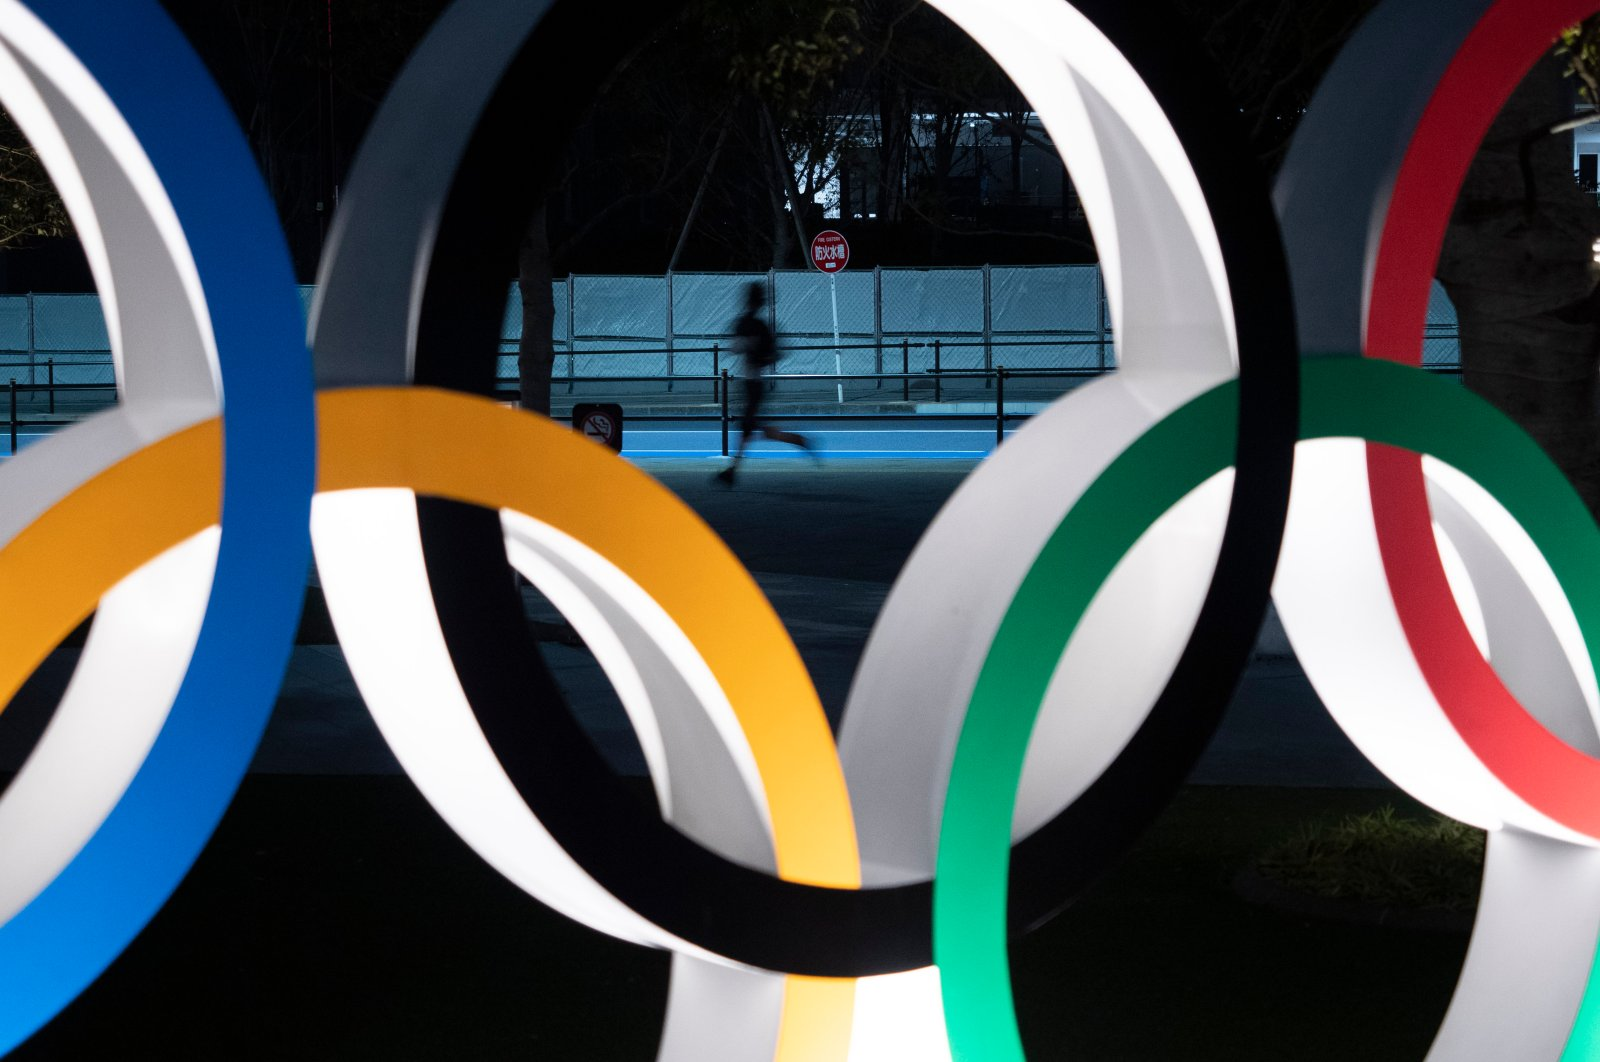 A man jogs past the Olympic rings in Tokyo, Japan, March 30, 2020. (AP Photo)